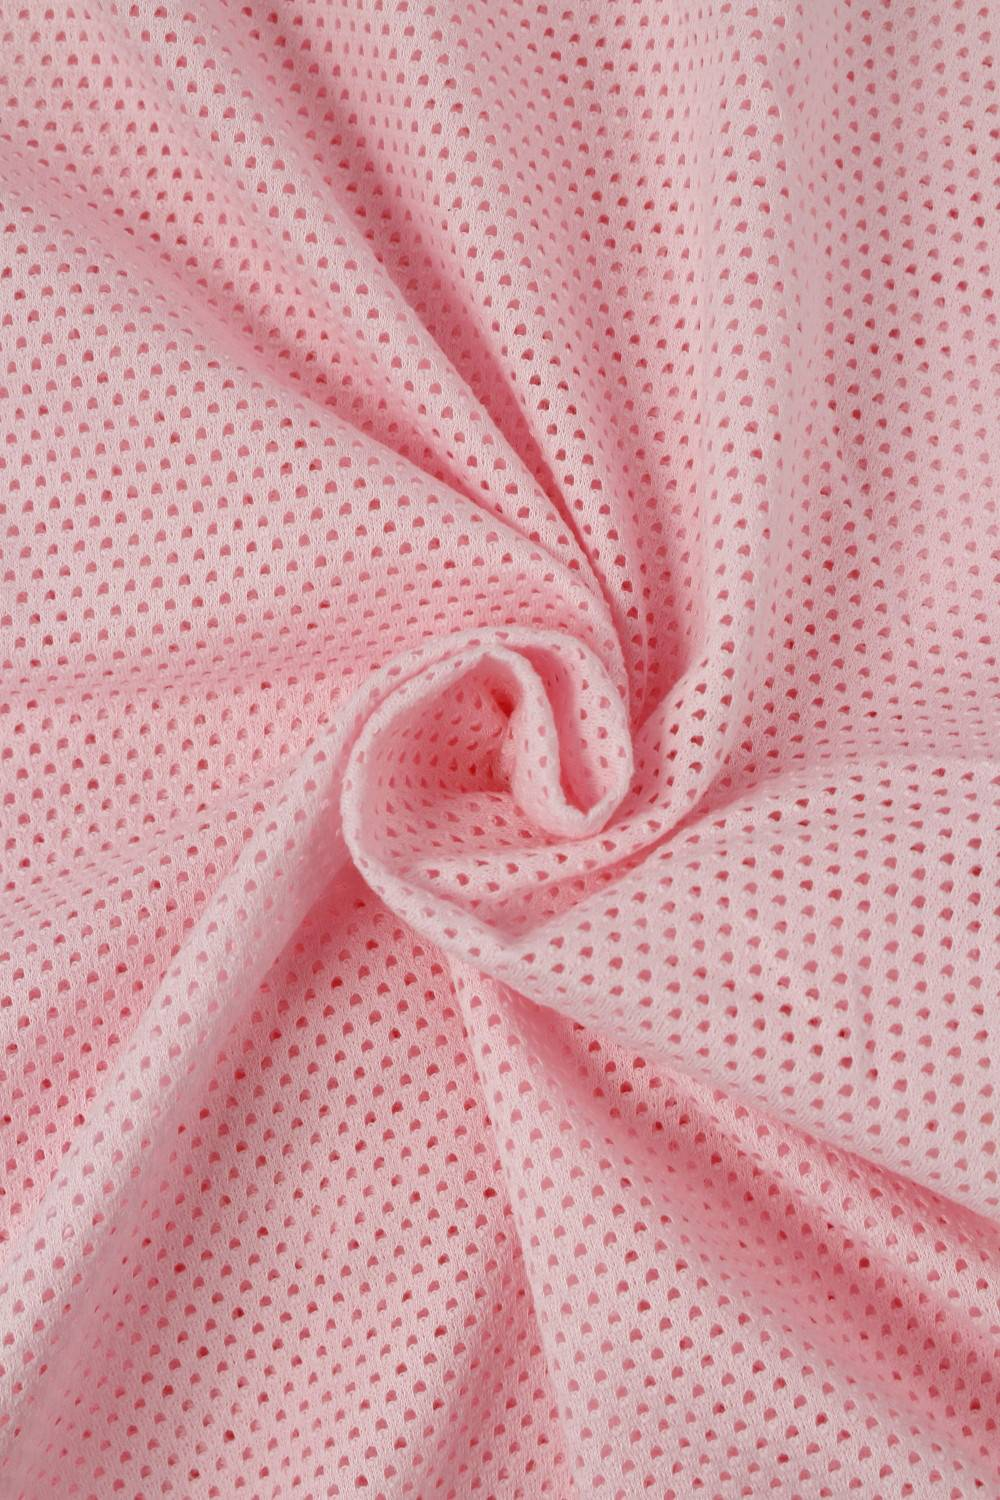 Knit - Perforated - Pink - 2 rm (Pre-cut)